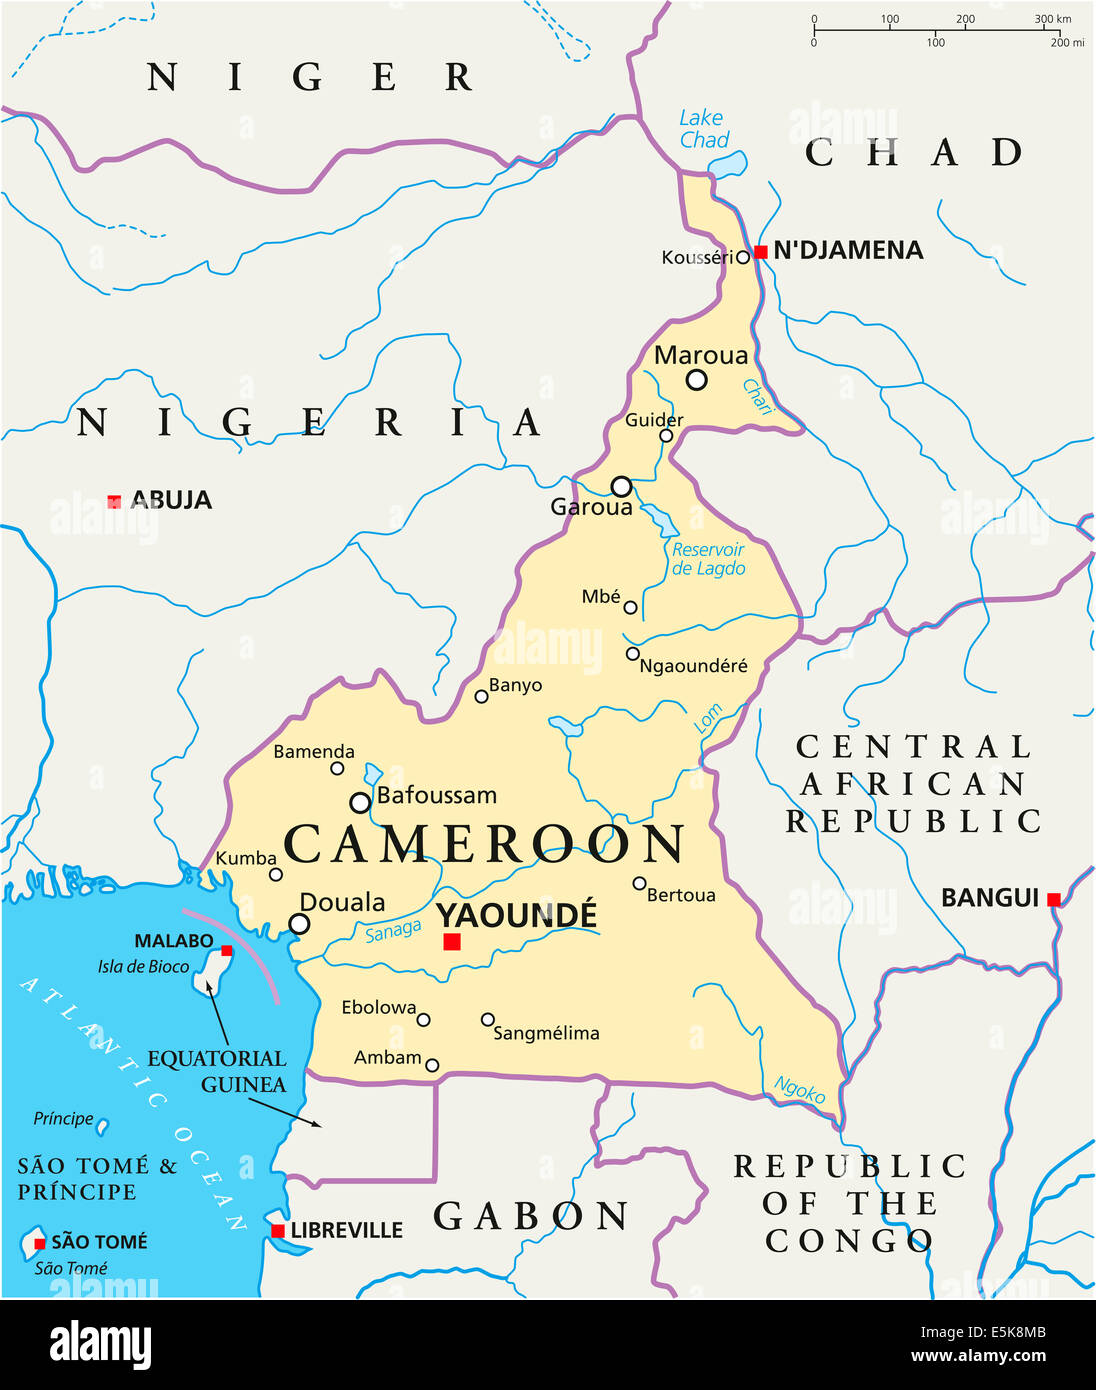 Cameroon Political Map With Capital Yaounde National Borders Most